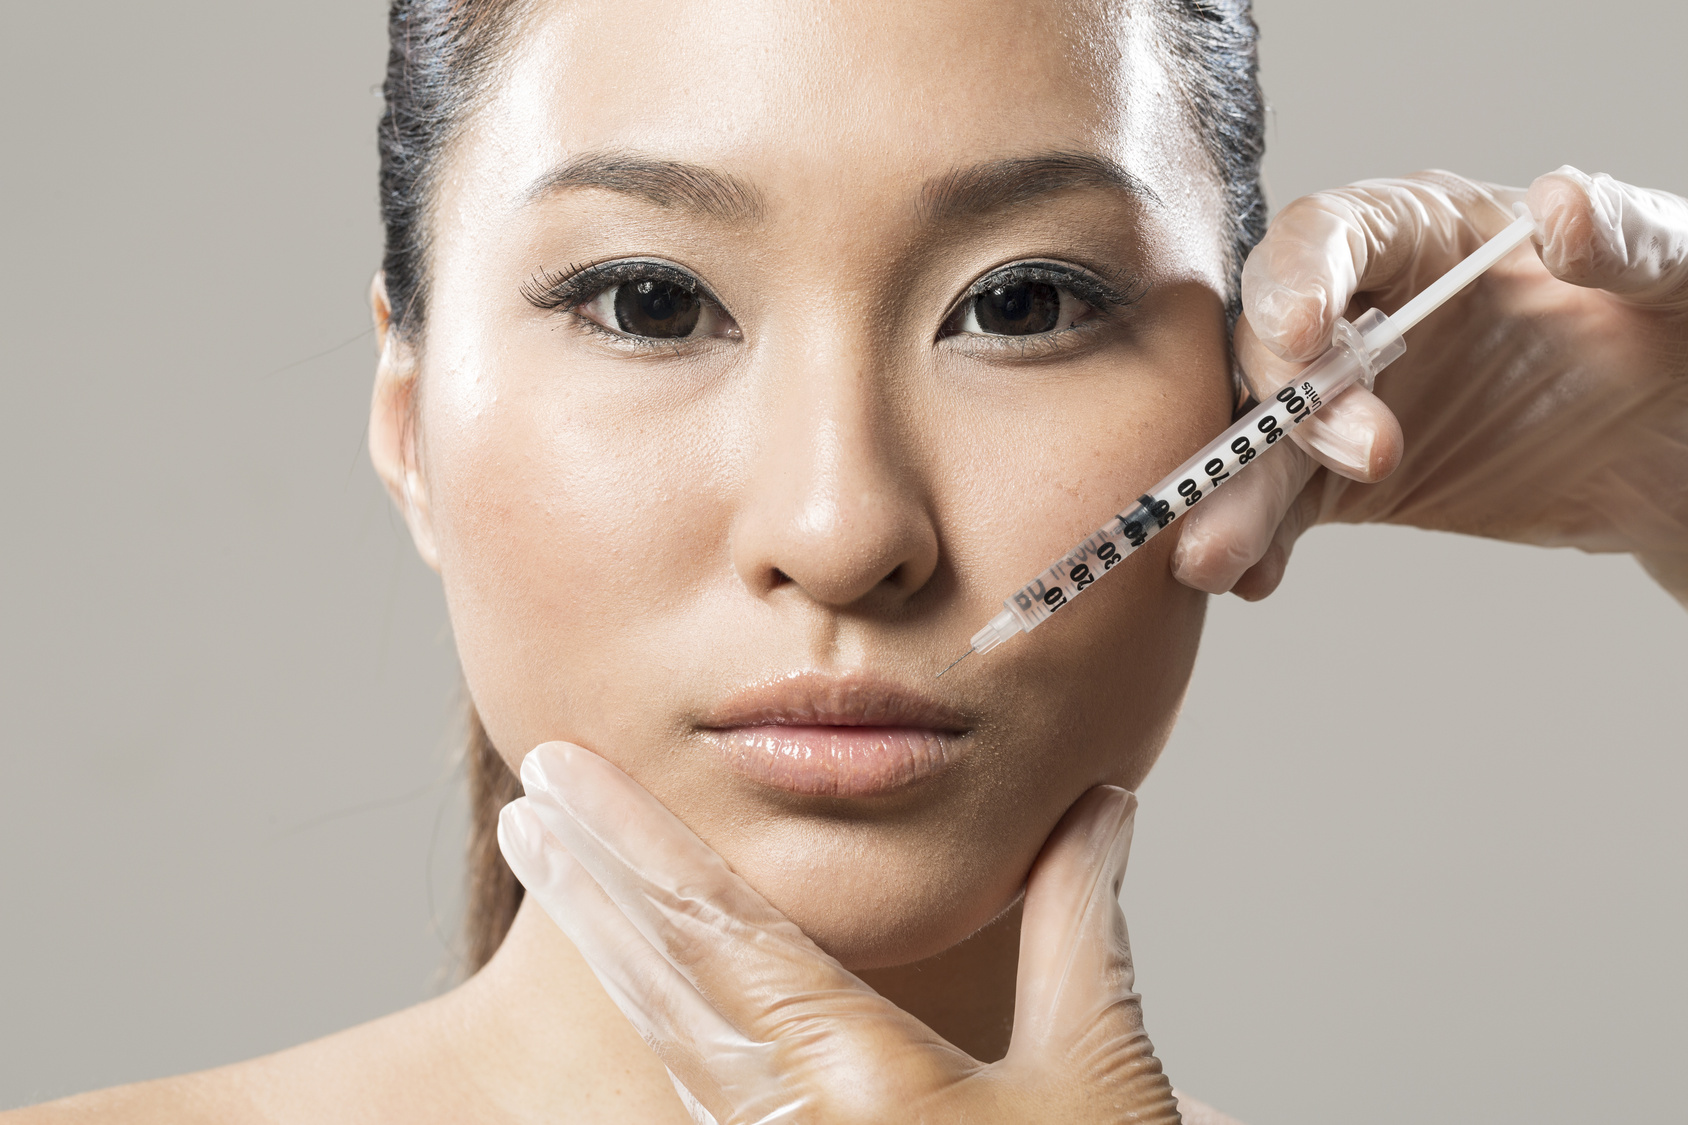 Chinese woman receiving a botox injection.